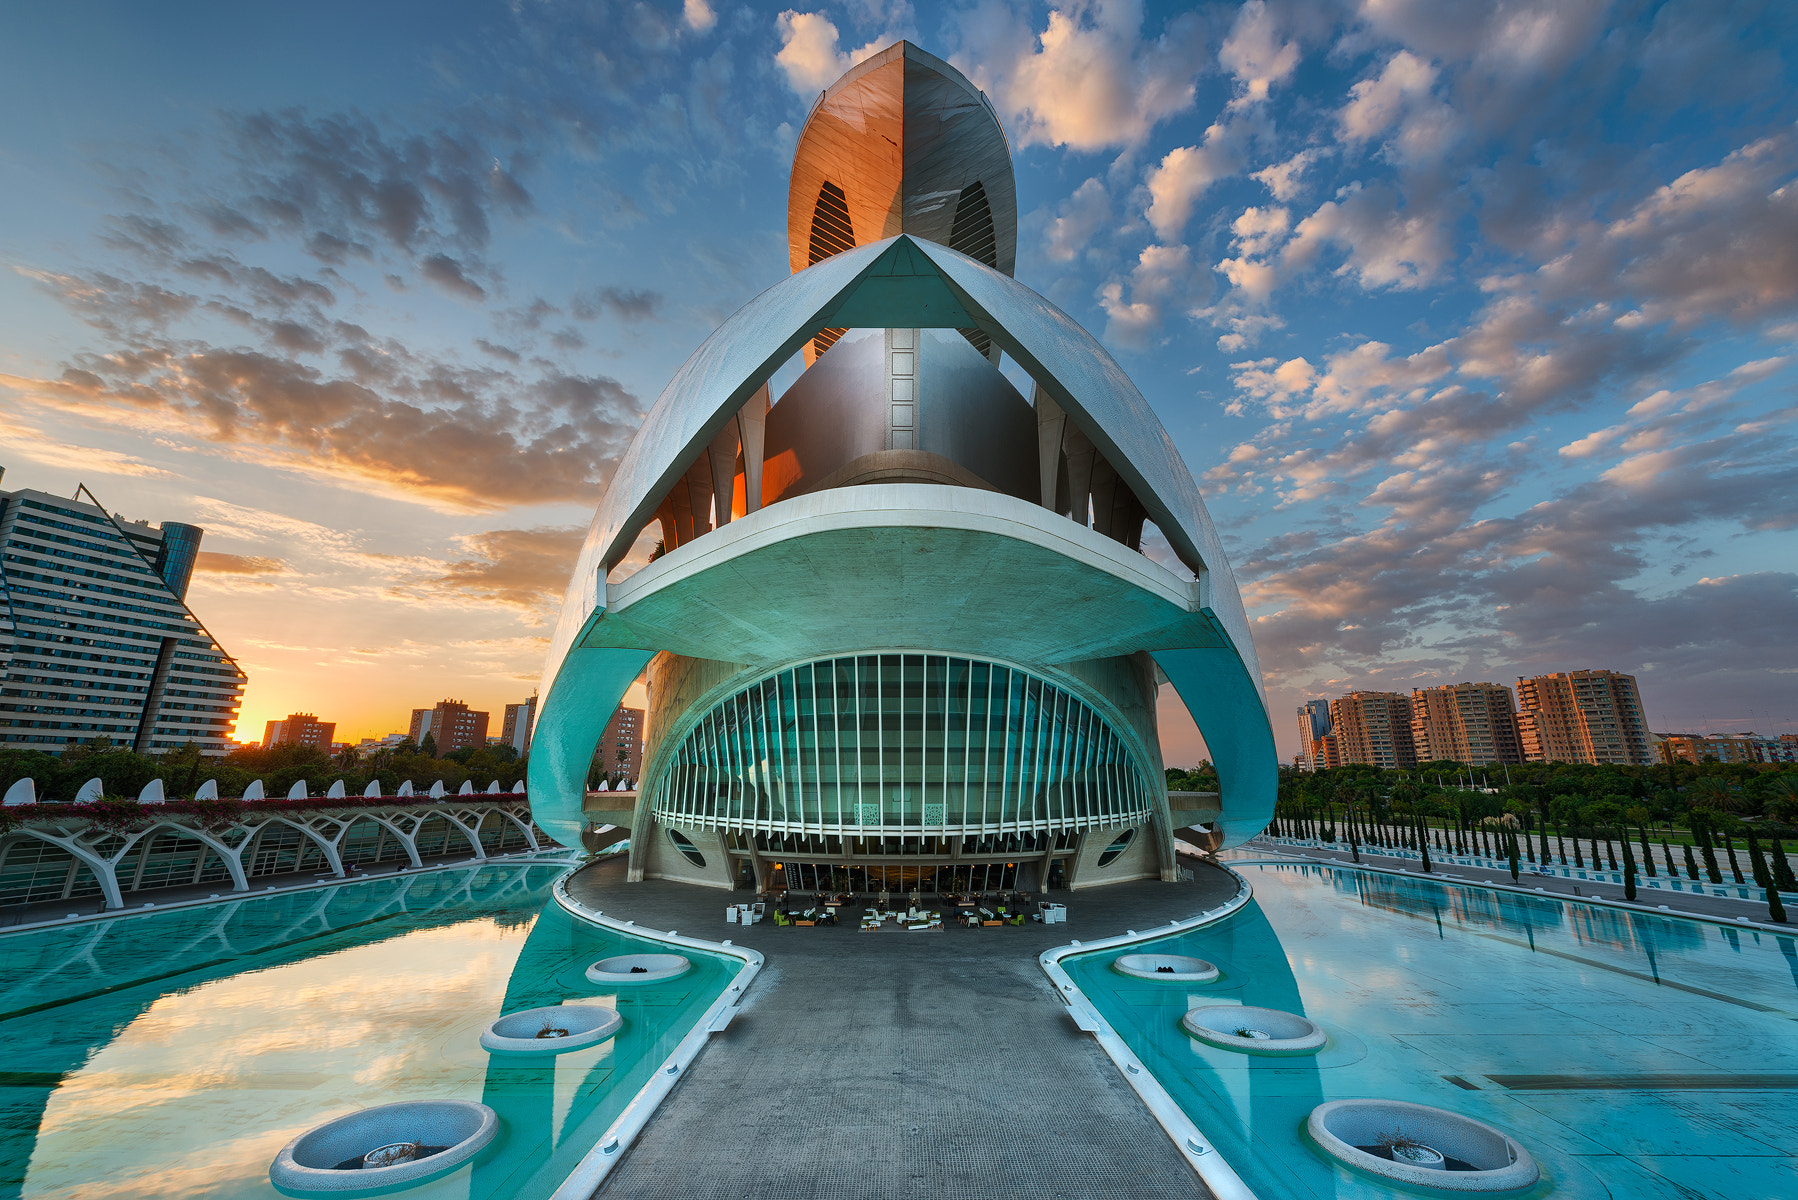 Photograph The Art Science of Valencia - Ciudad de las Artes y las Ciencias by Danny Xeero on 500px